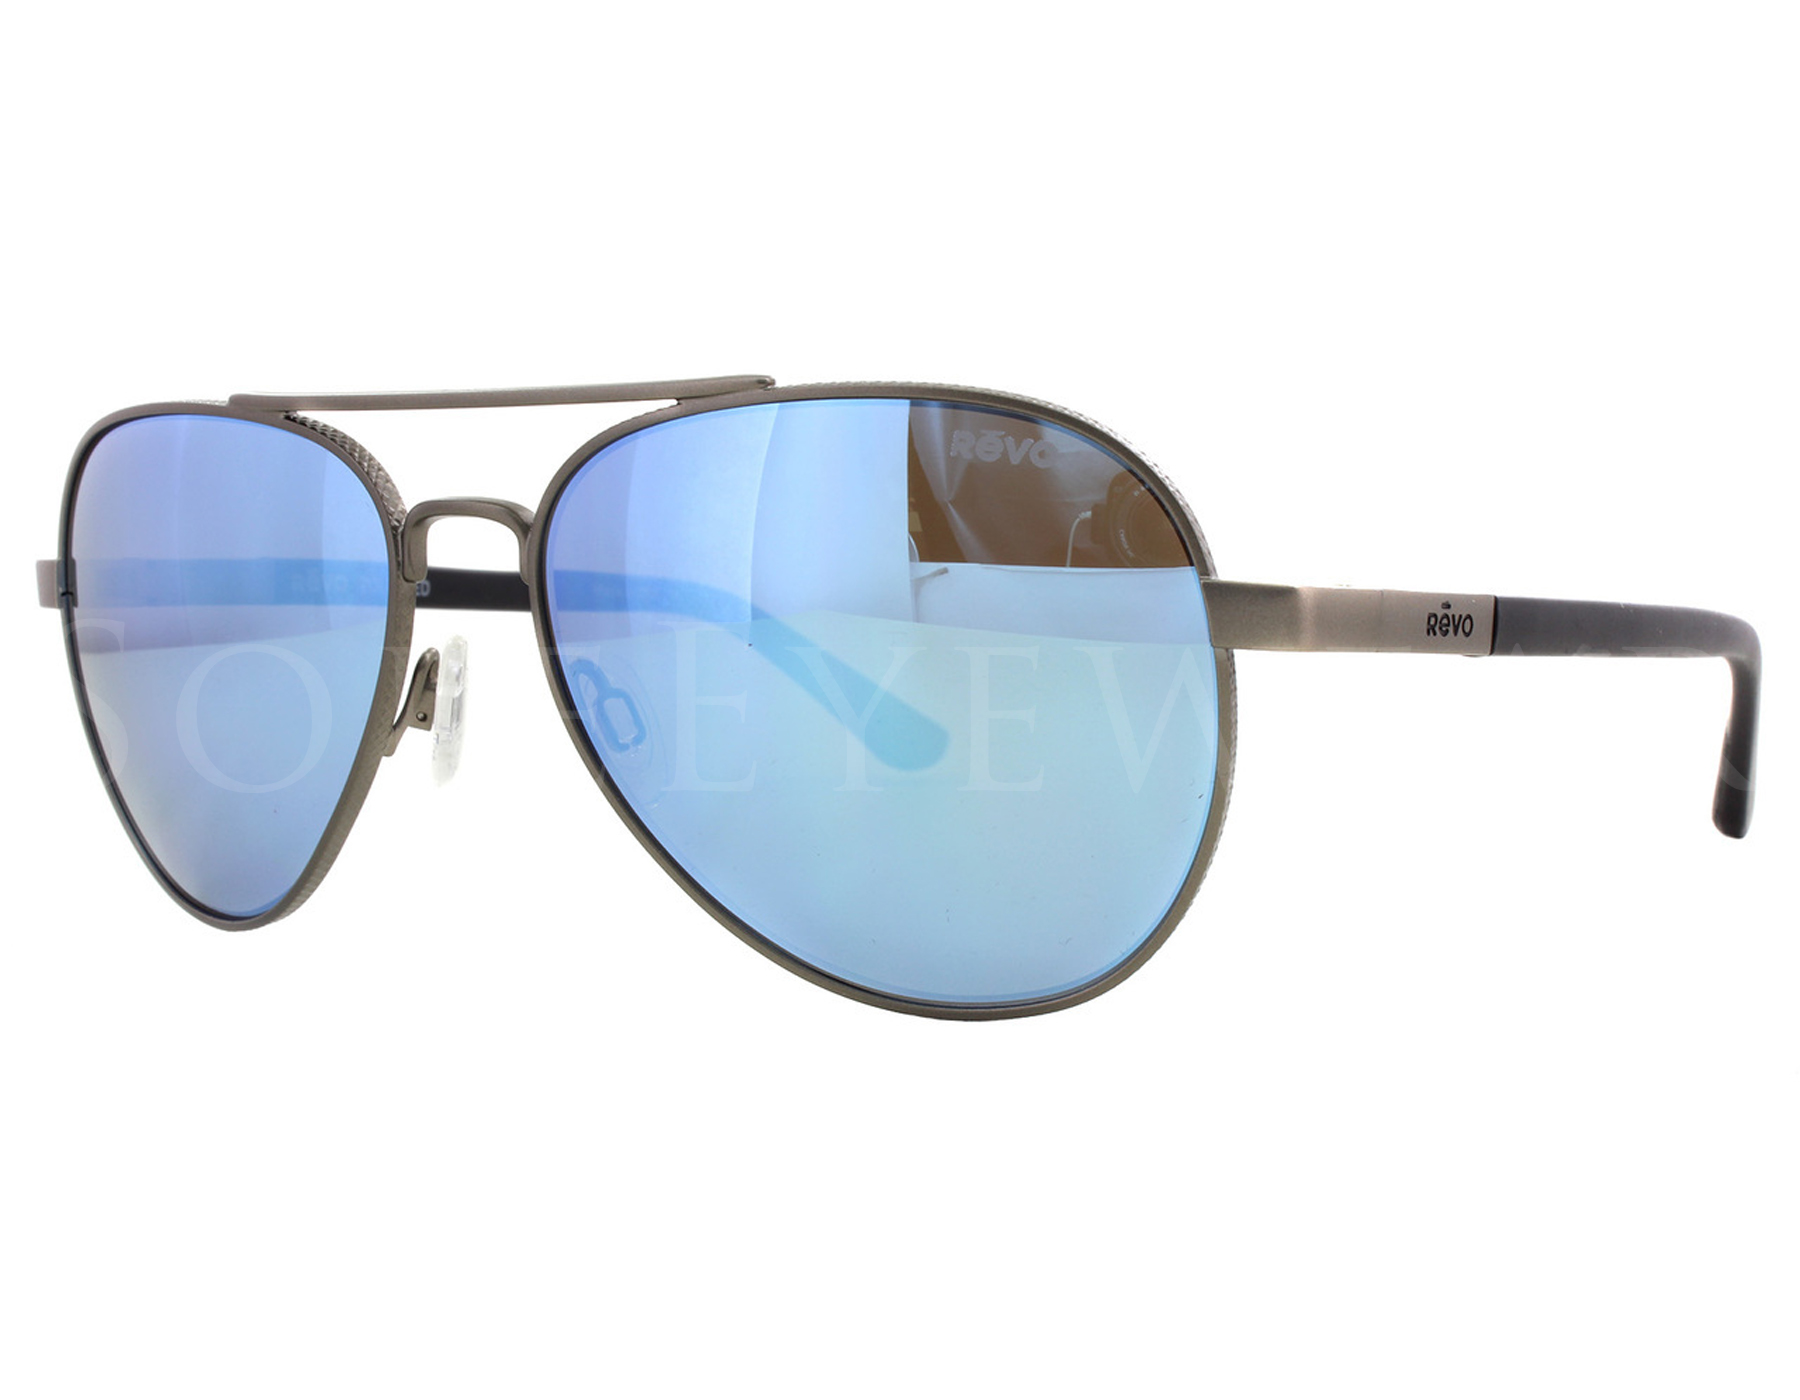 4e94d975883 Details about NEW Revo Raconteur RE 1011 00 BL Gunmetal   Blue Sunglasses